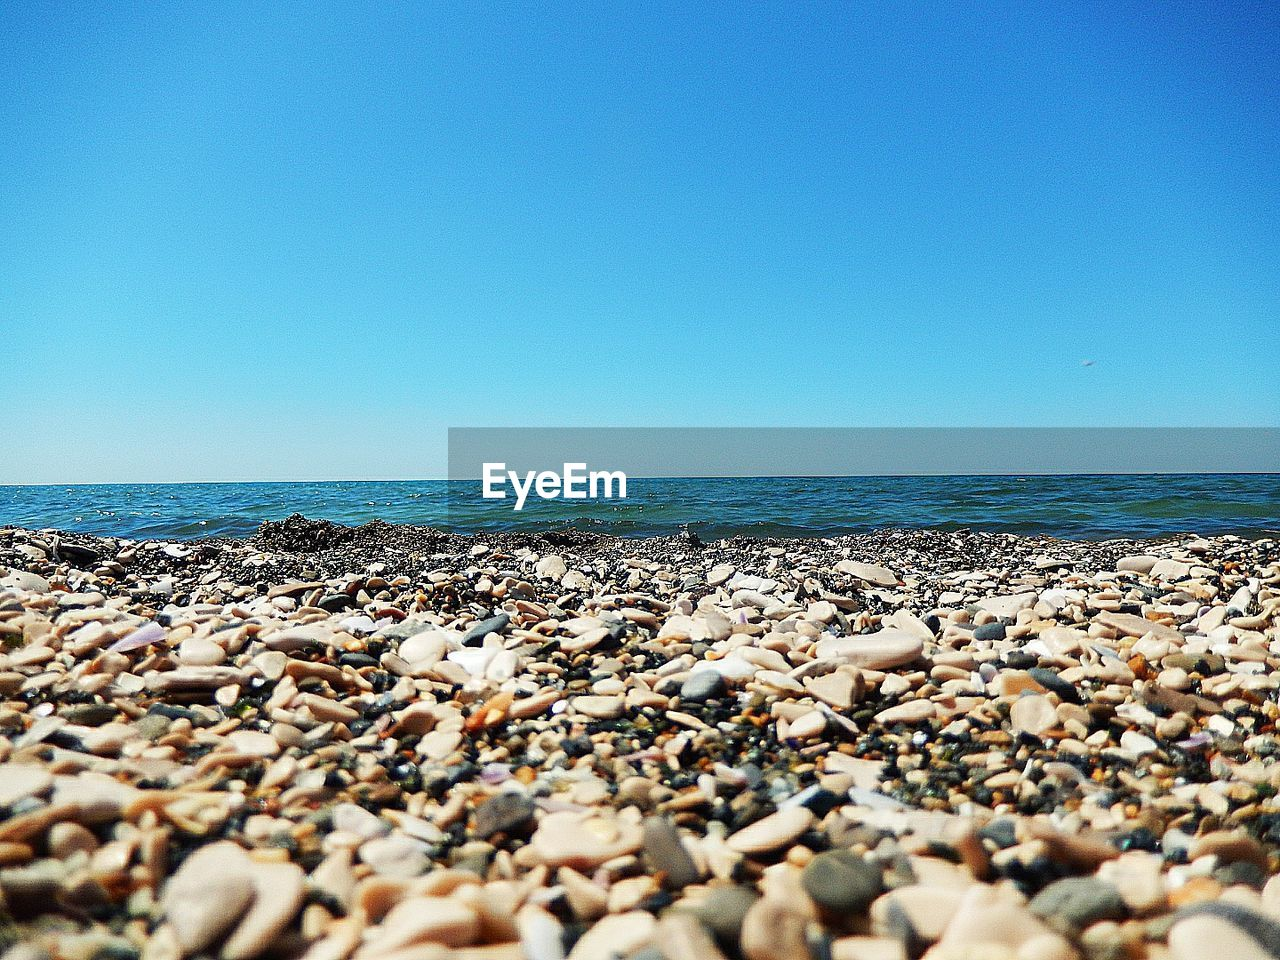 sea, horizon over water, nature, beach, water, clear sky, beauty in nature, pebble, tranquil scene, blue, scenics, shore, pebble beach, copy space, tranquility, day, outdoors, no people, sky